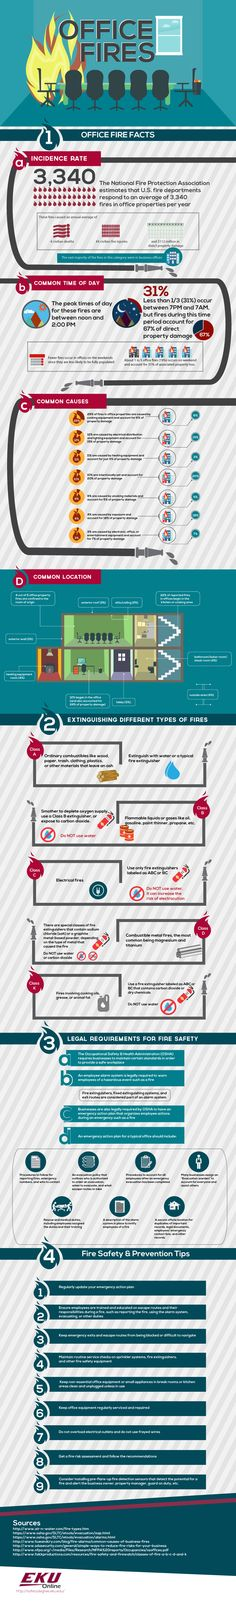 How to Prevent Office Fires [Infographic] | Safety content from EHS Today